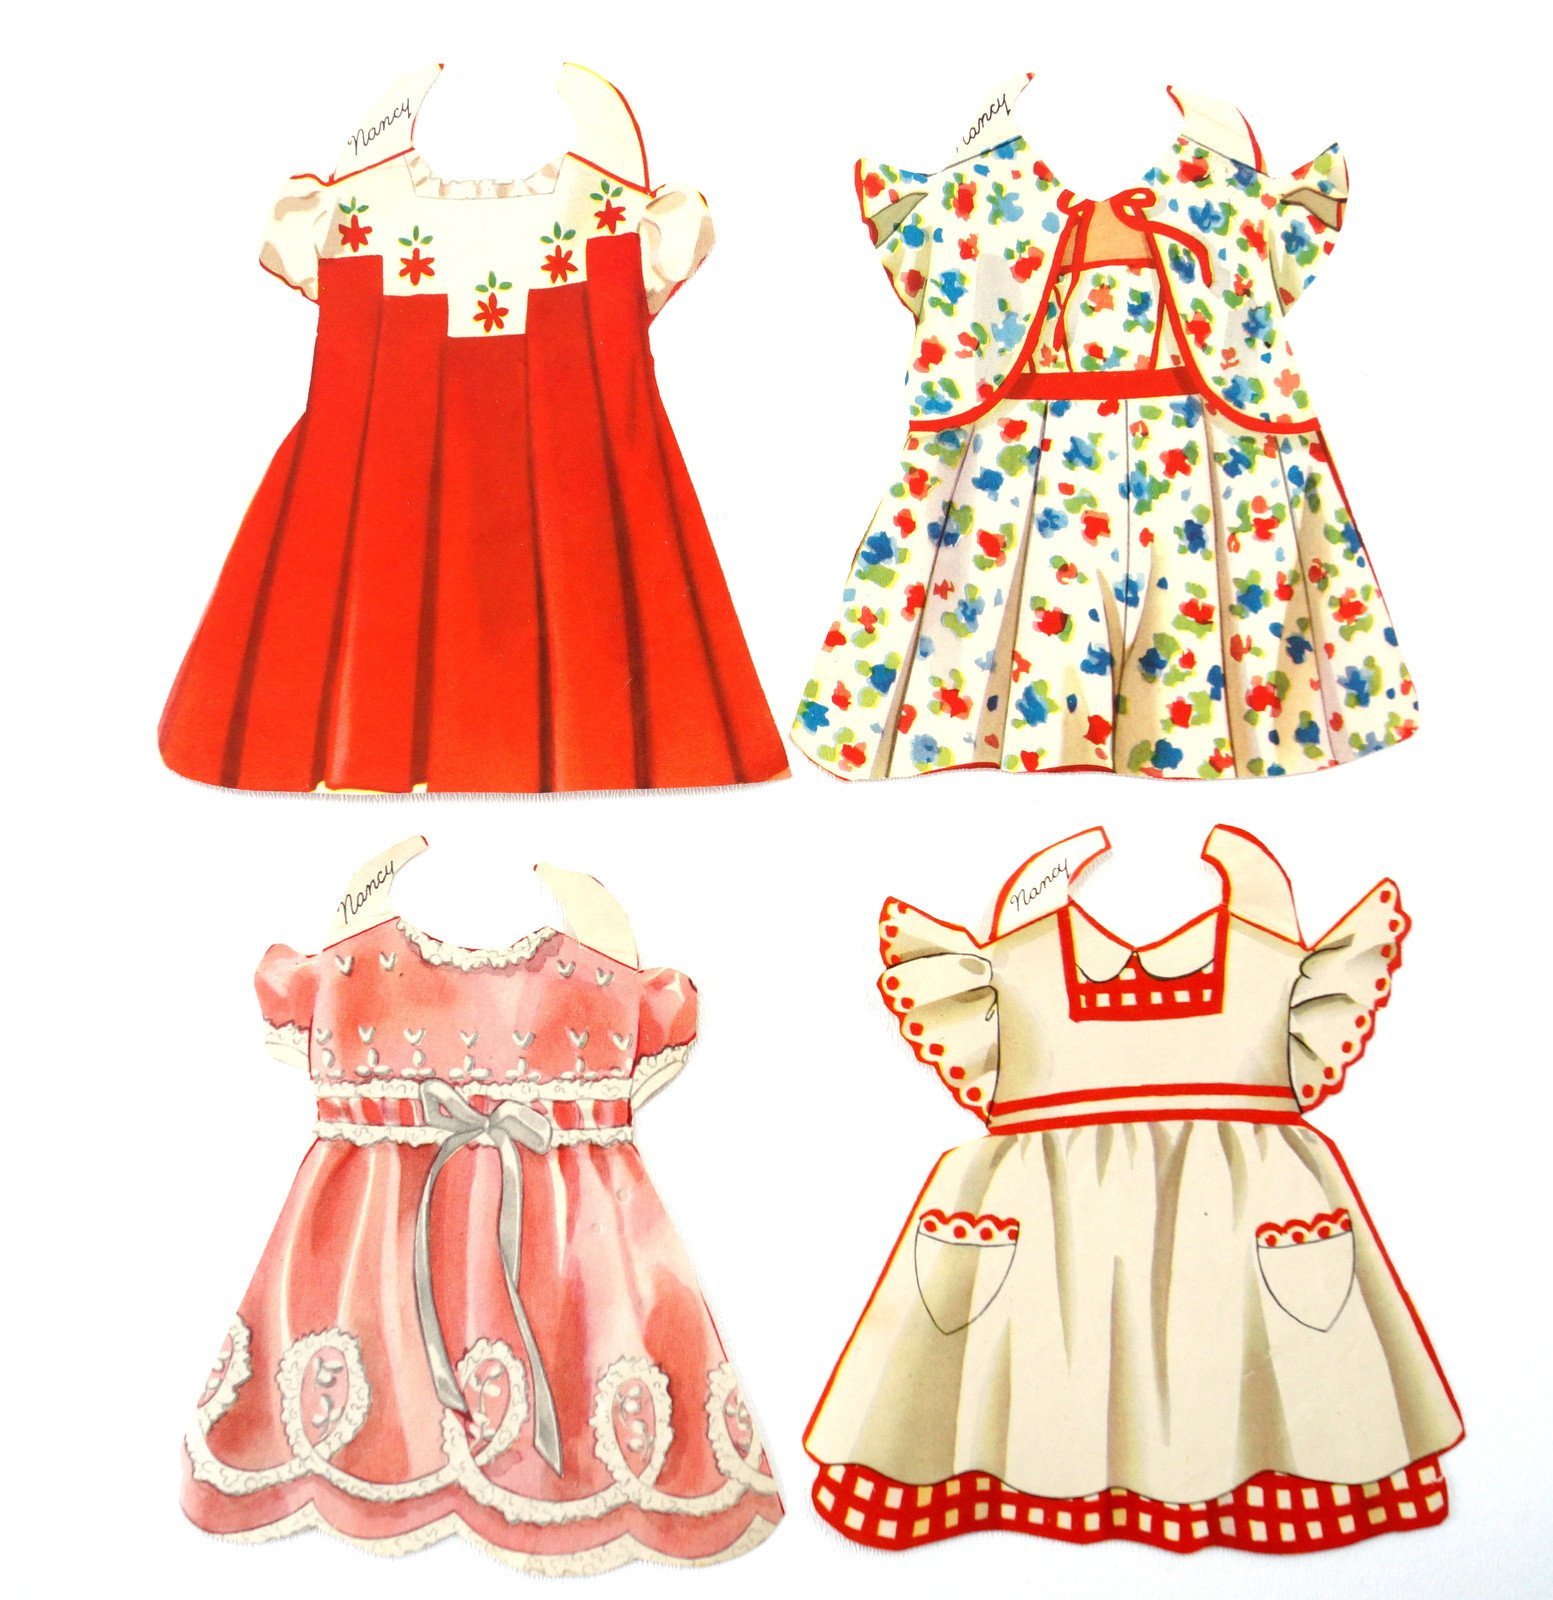 Vintage Paper Doll Toddler Nancy With Clothing 25 Pieces C 1940s Vintage Paper Doll Paper Dolls Arts And Crafts